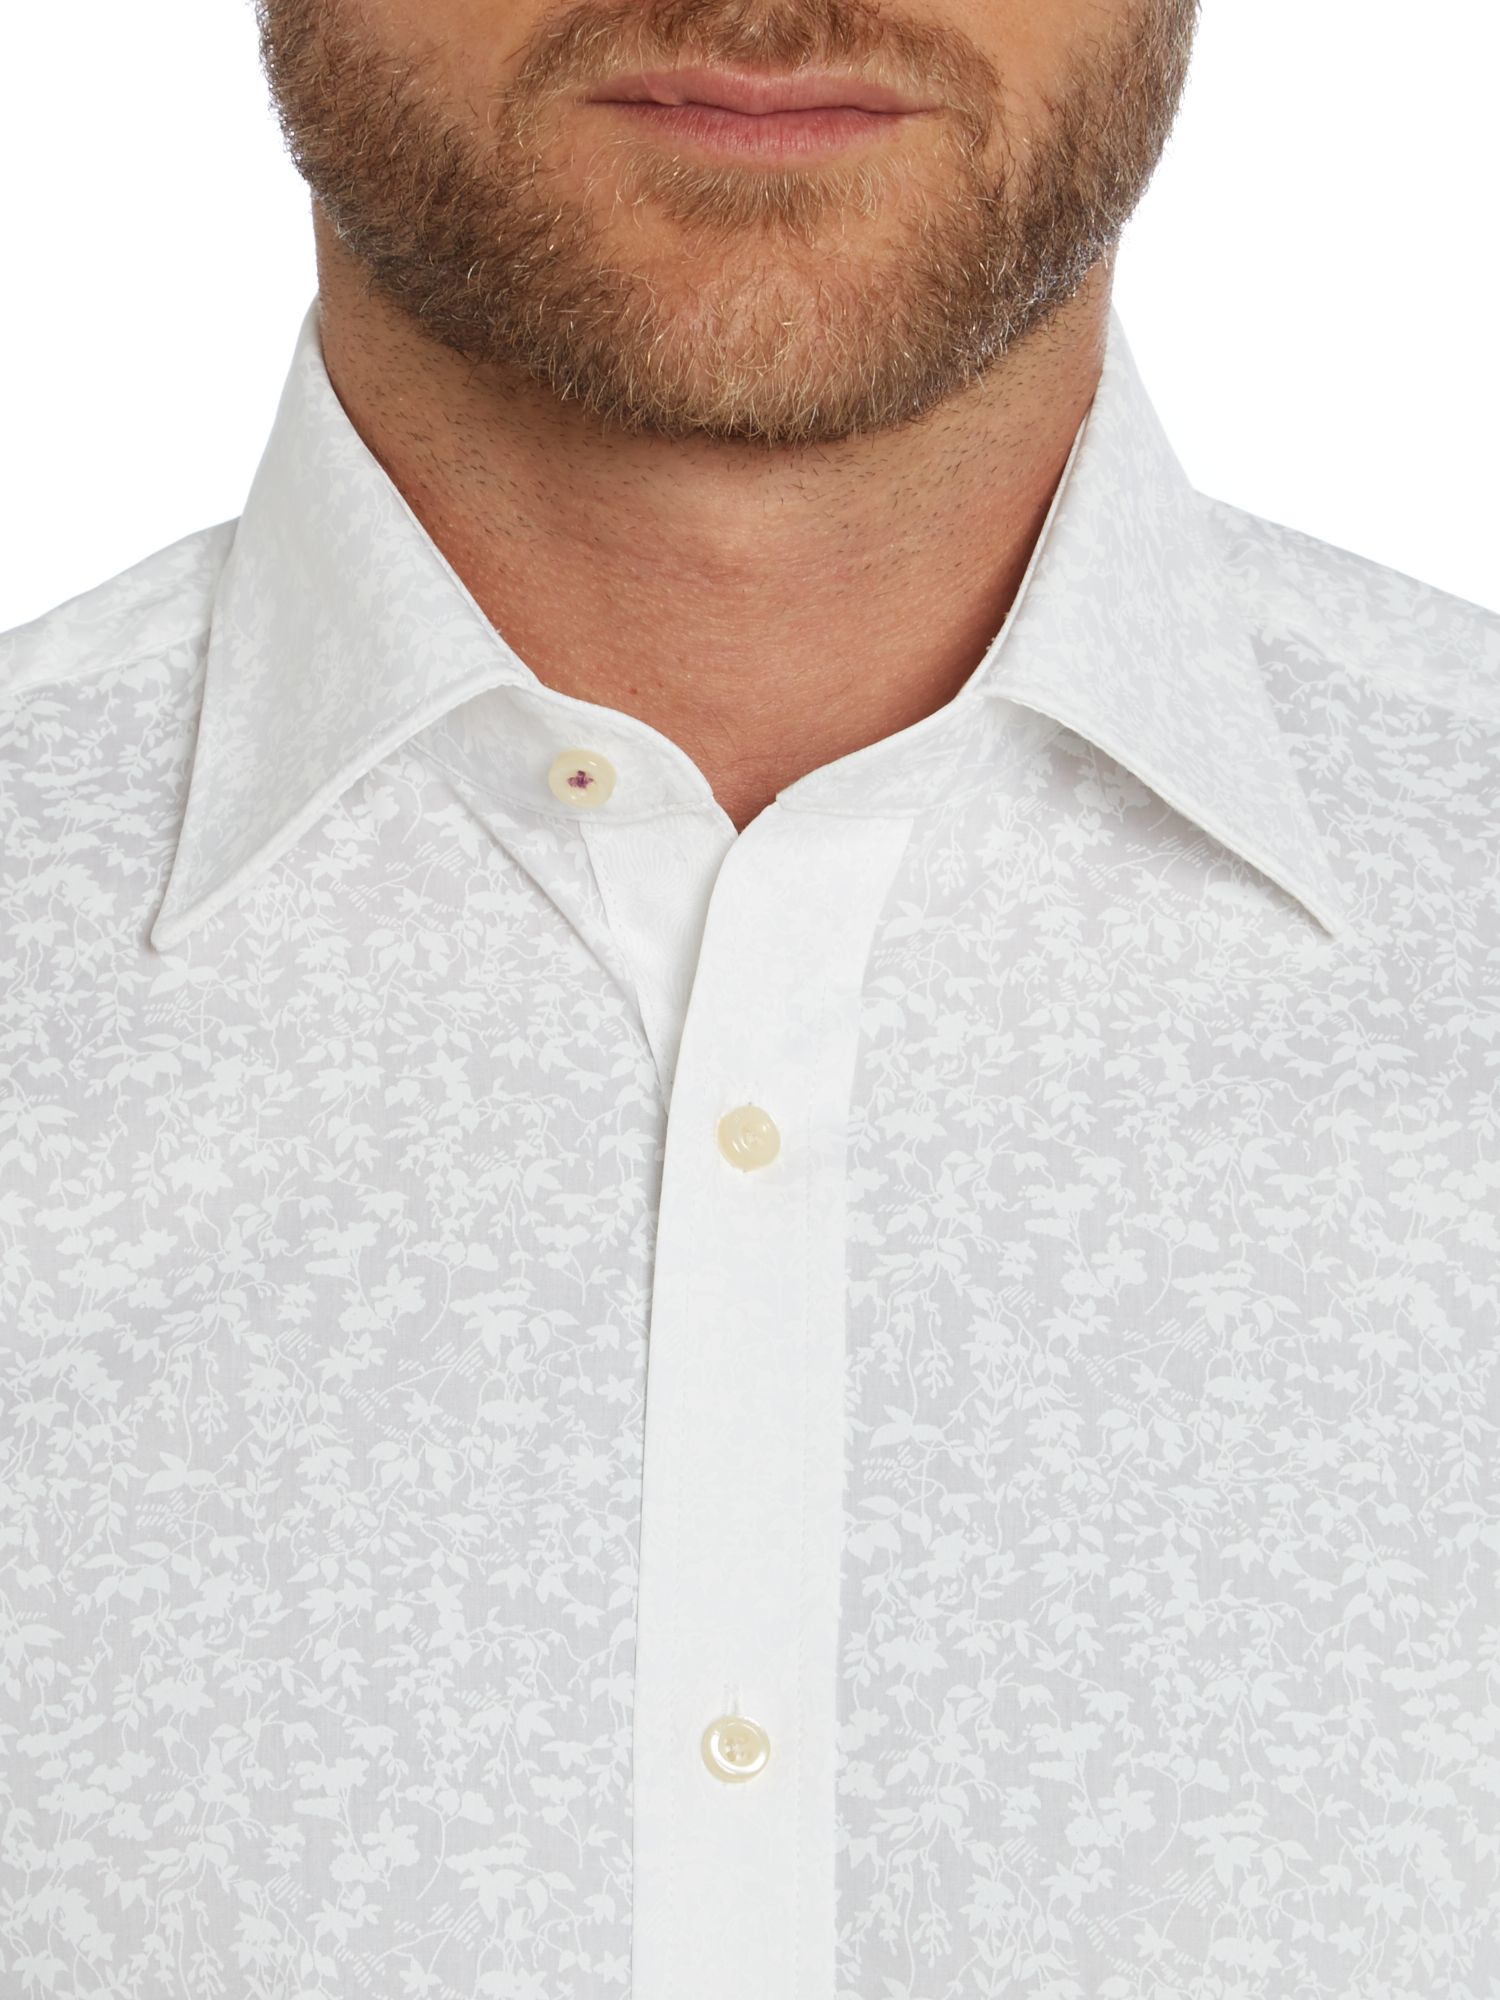 Ted baker flosho floral double cuff formal shirt in white for Ted baker floral shirt